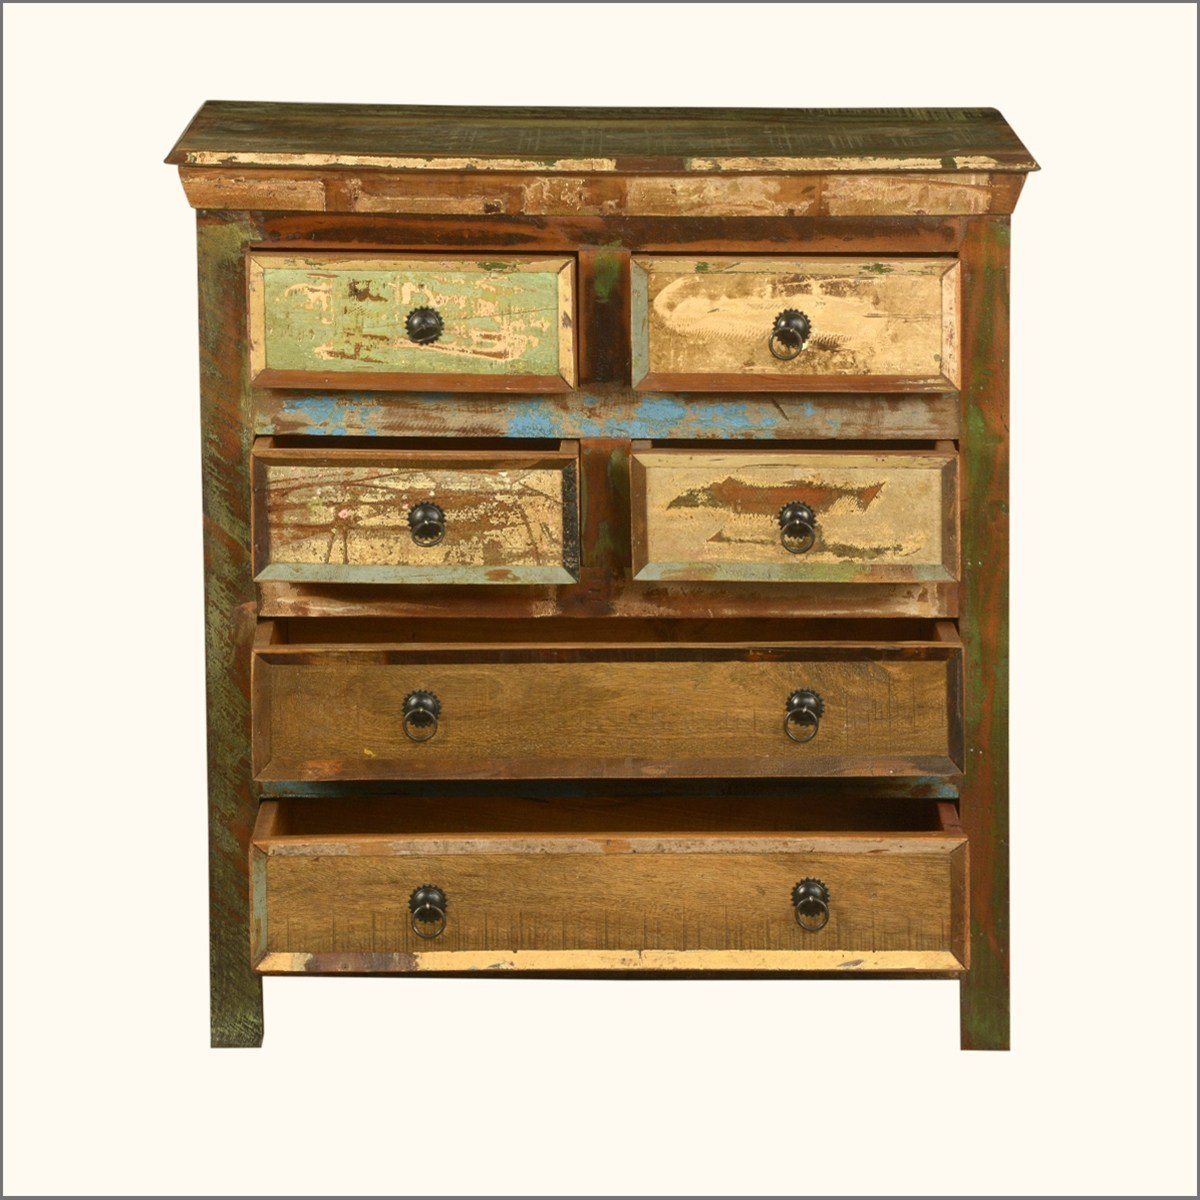 Best Rustic Bedroom Dressers Ideas About Rustic Dresser On Dresser Drawer Dresser Restoration Ideas With Pictures